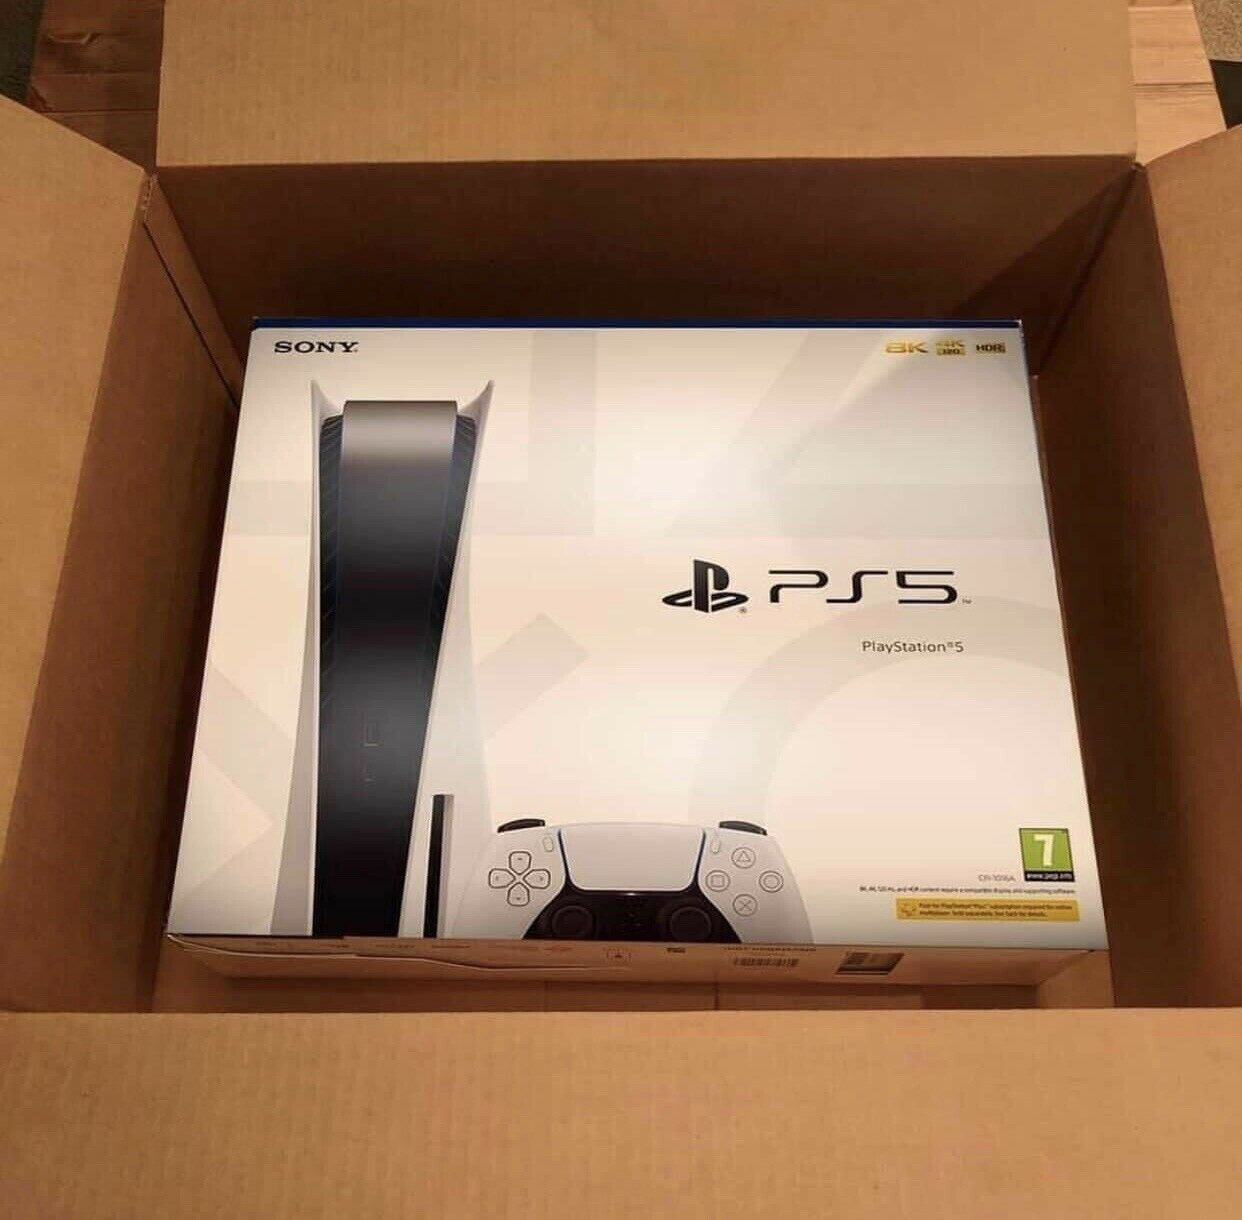 PS5 - PlayStation 5 Console Standard